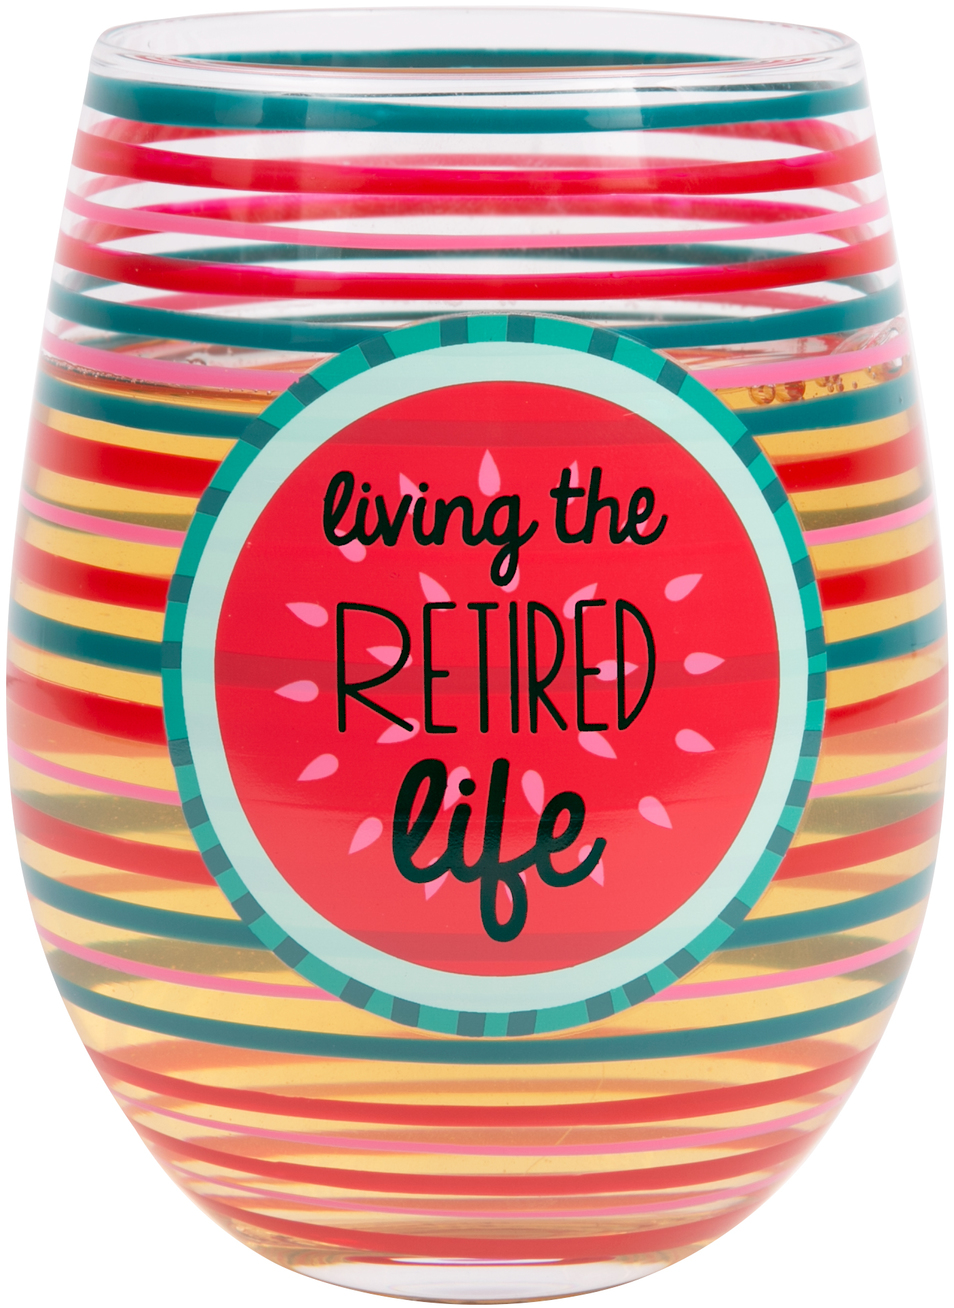 Retired by Livin' on the Wedge - Retired - 18 oz Crystal Stemless Wine Glass